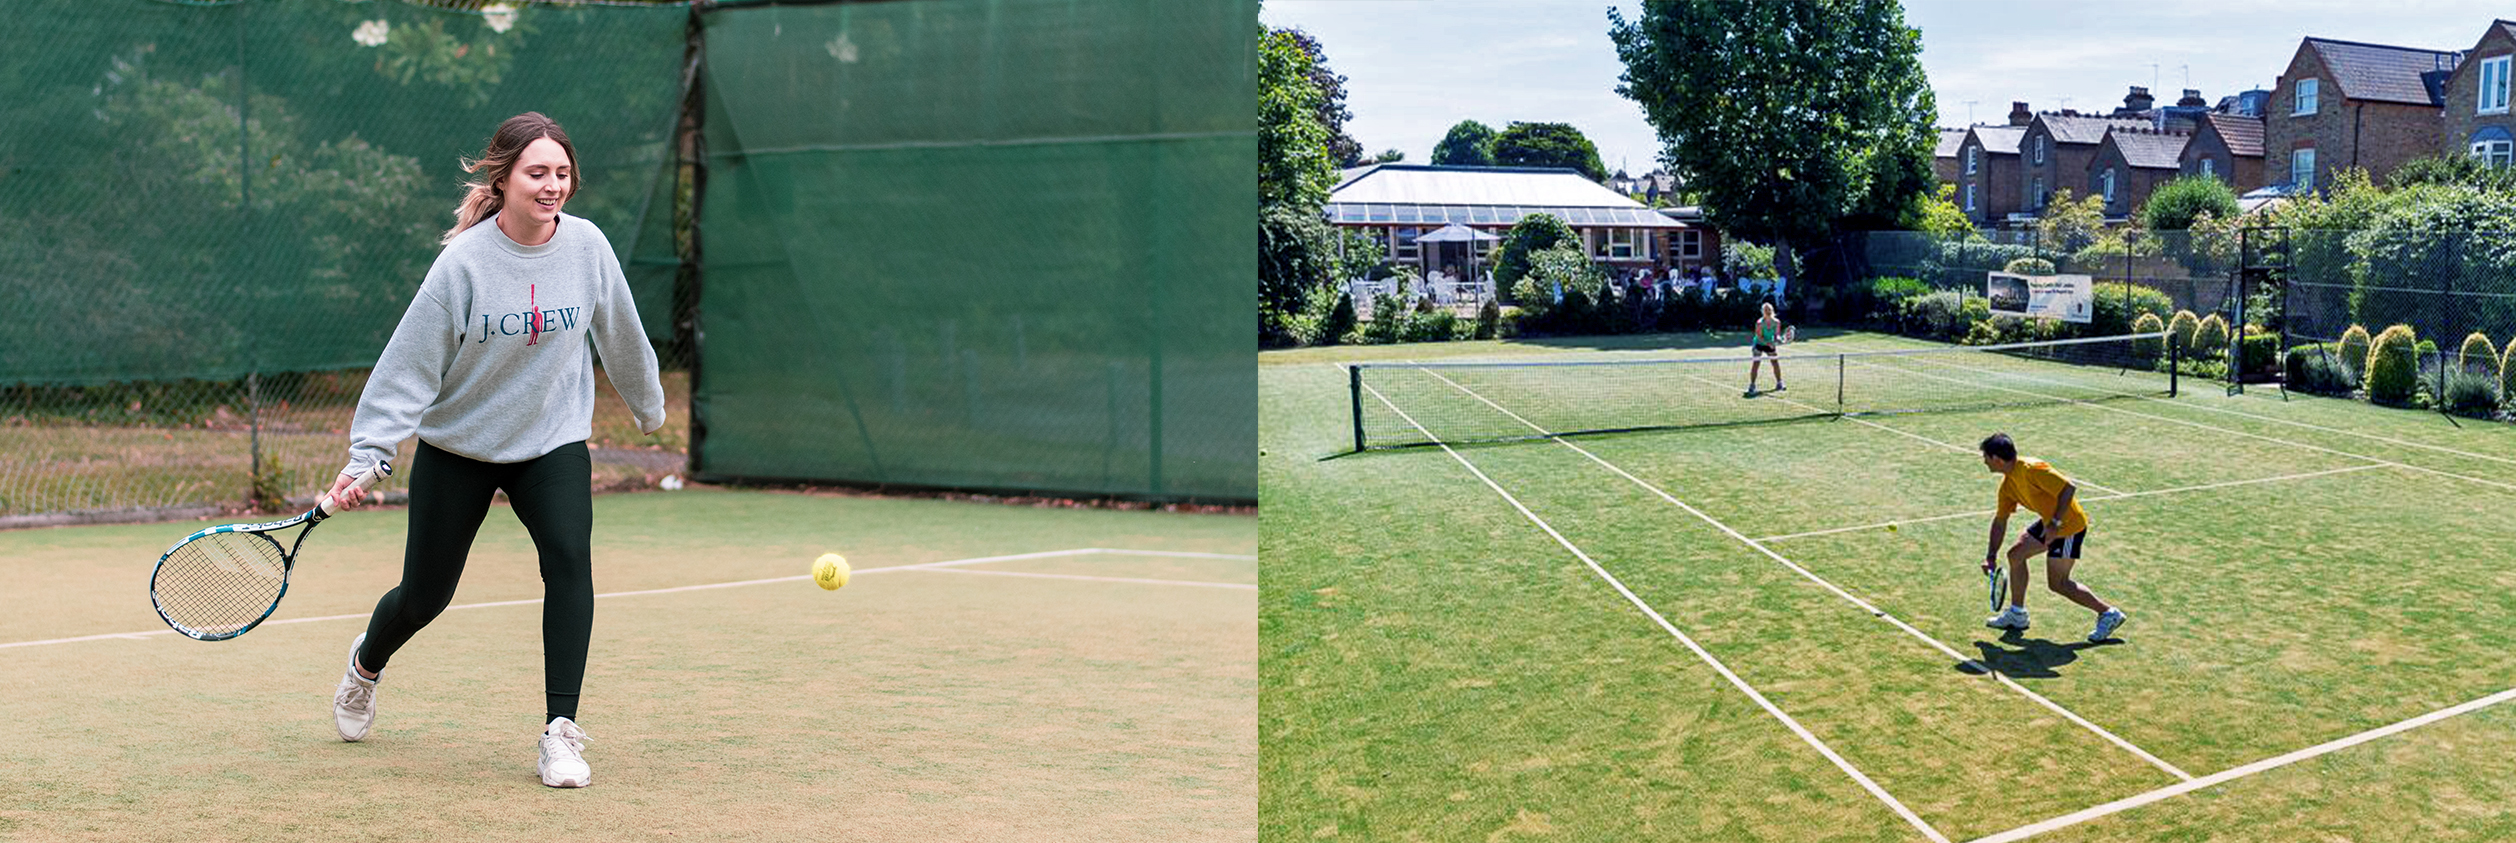 tennis at the Hogarth chiswick west london